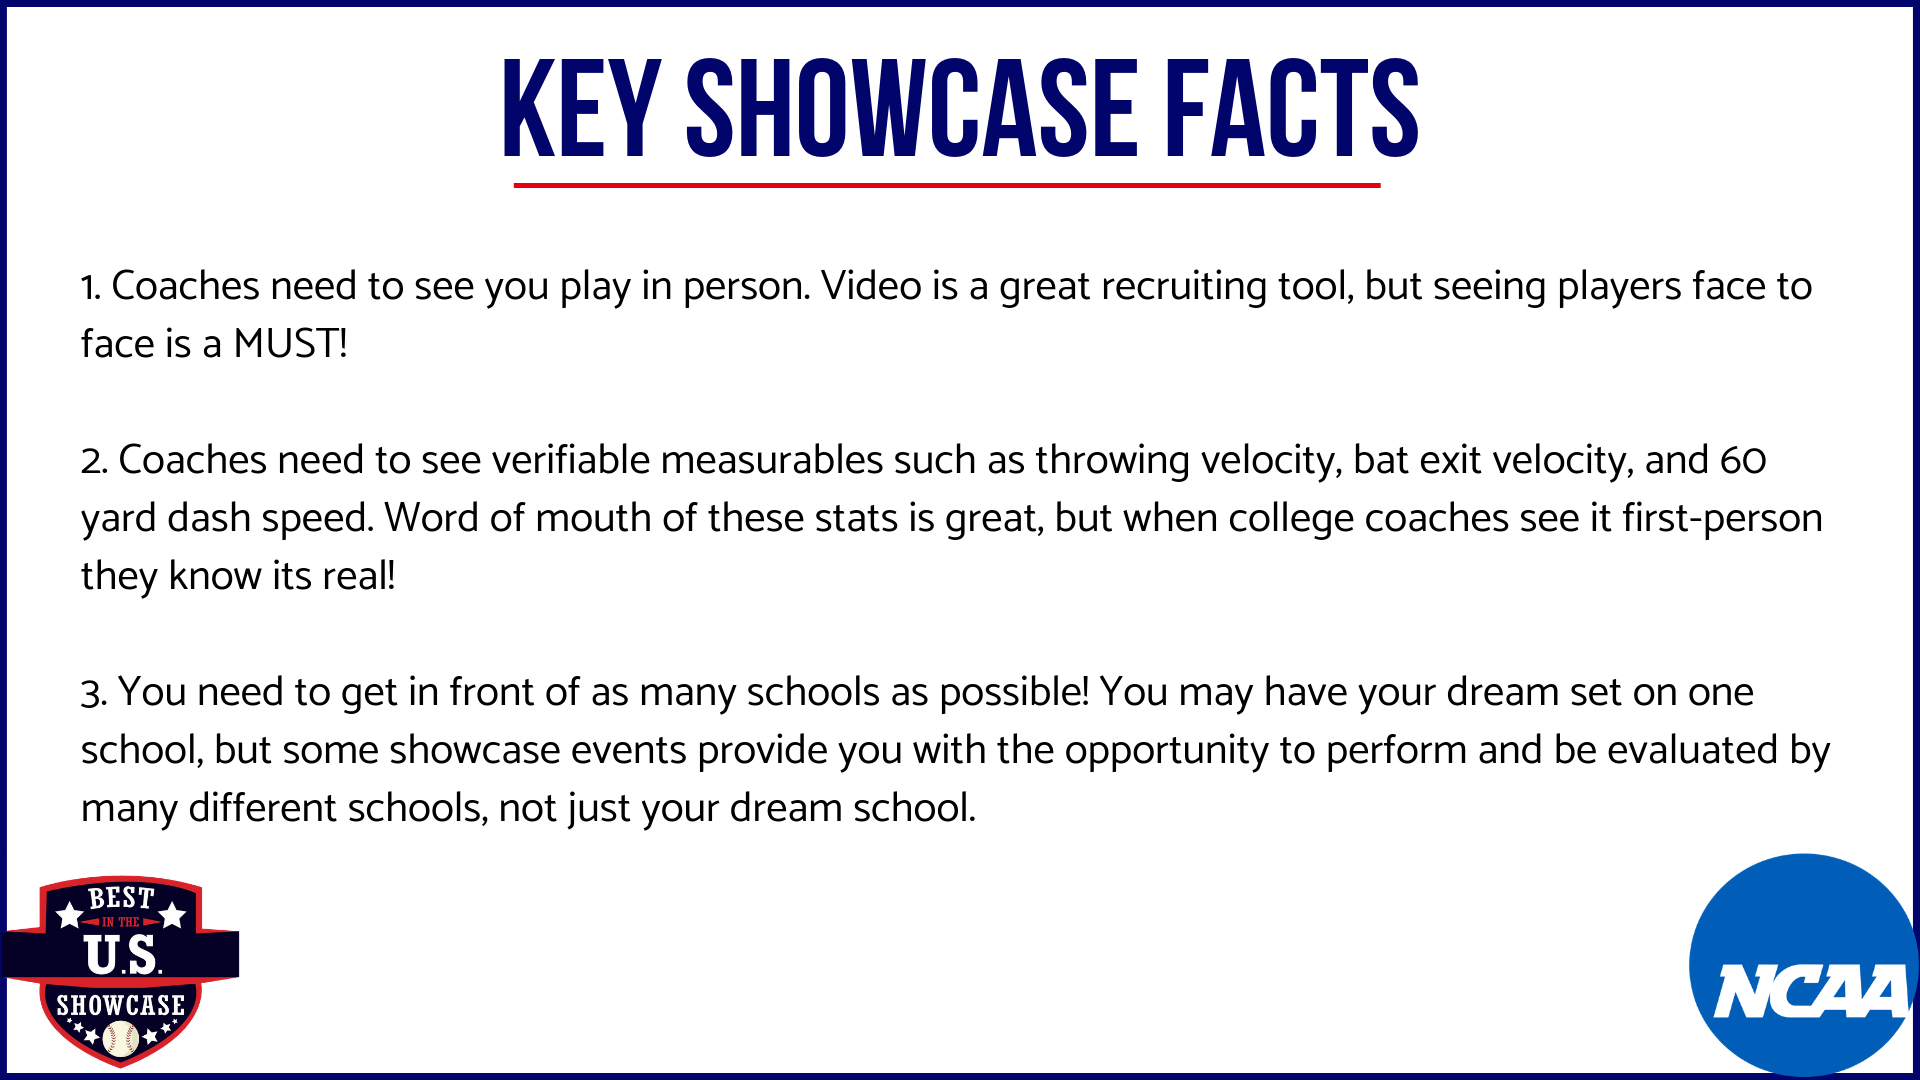 Key Showcase Facts (1).png